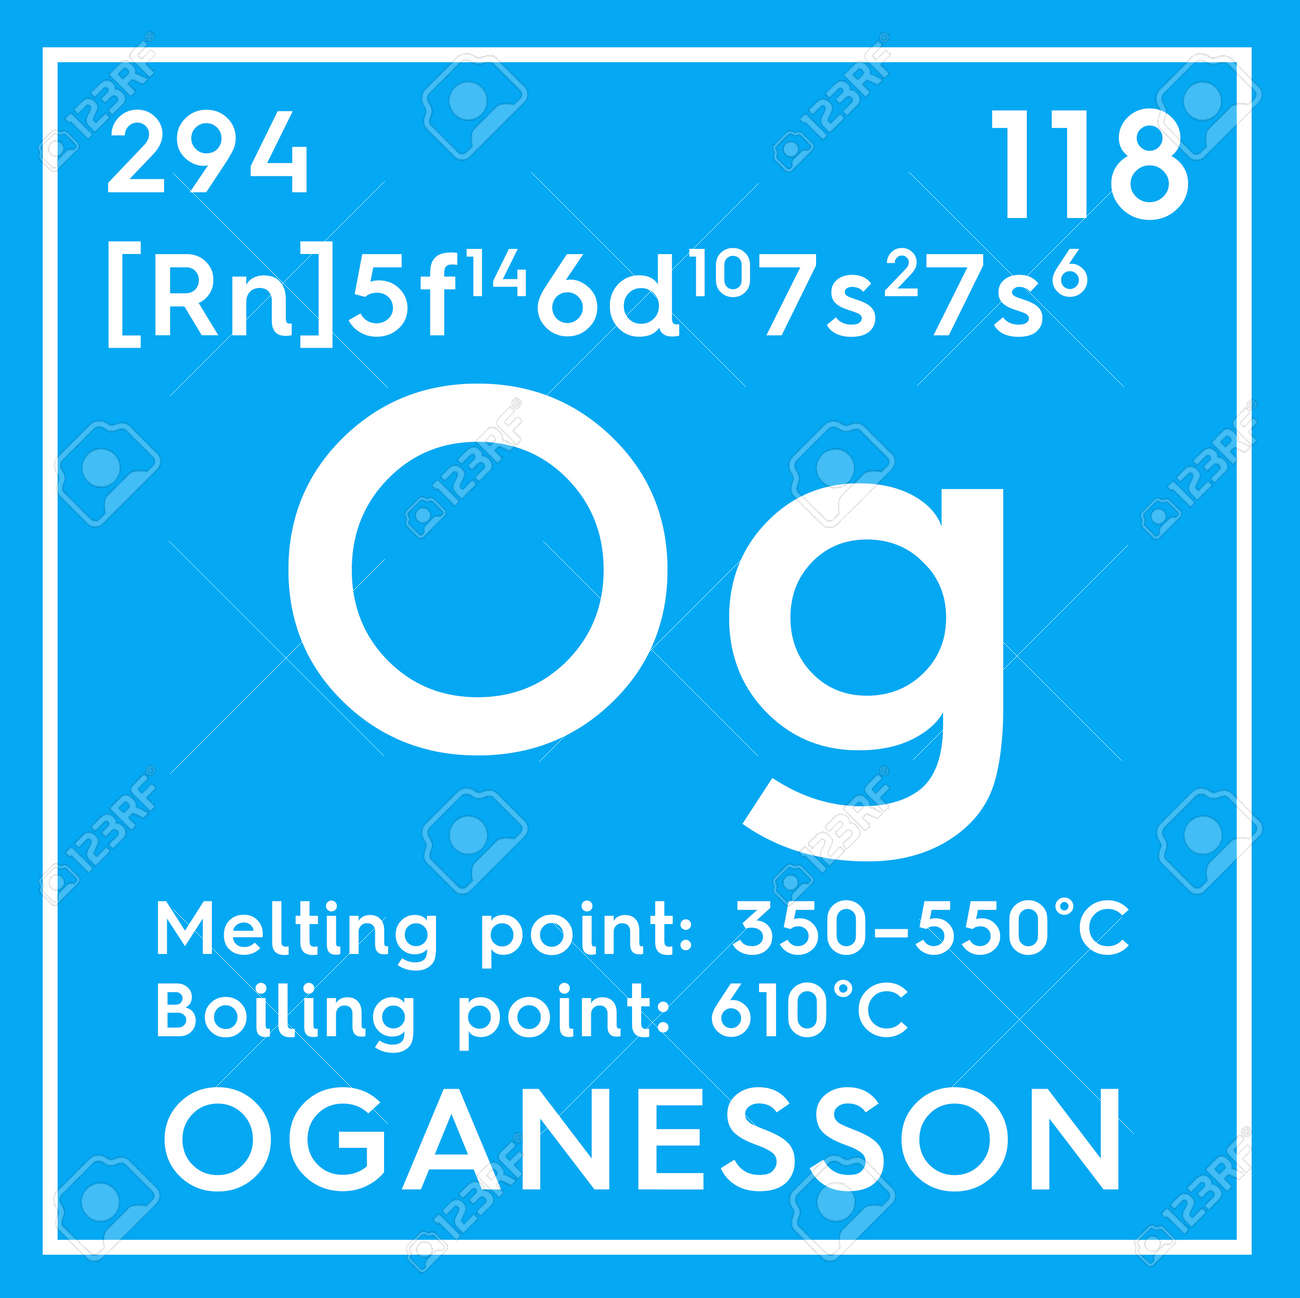 Oganesson noble gases chemical element of mendeleevs periodic chemical element of mendeleevs periodic table oganesson in square cube gamestrikefo Gallery